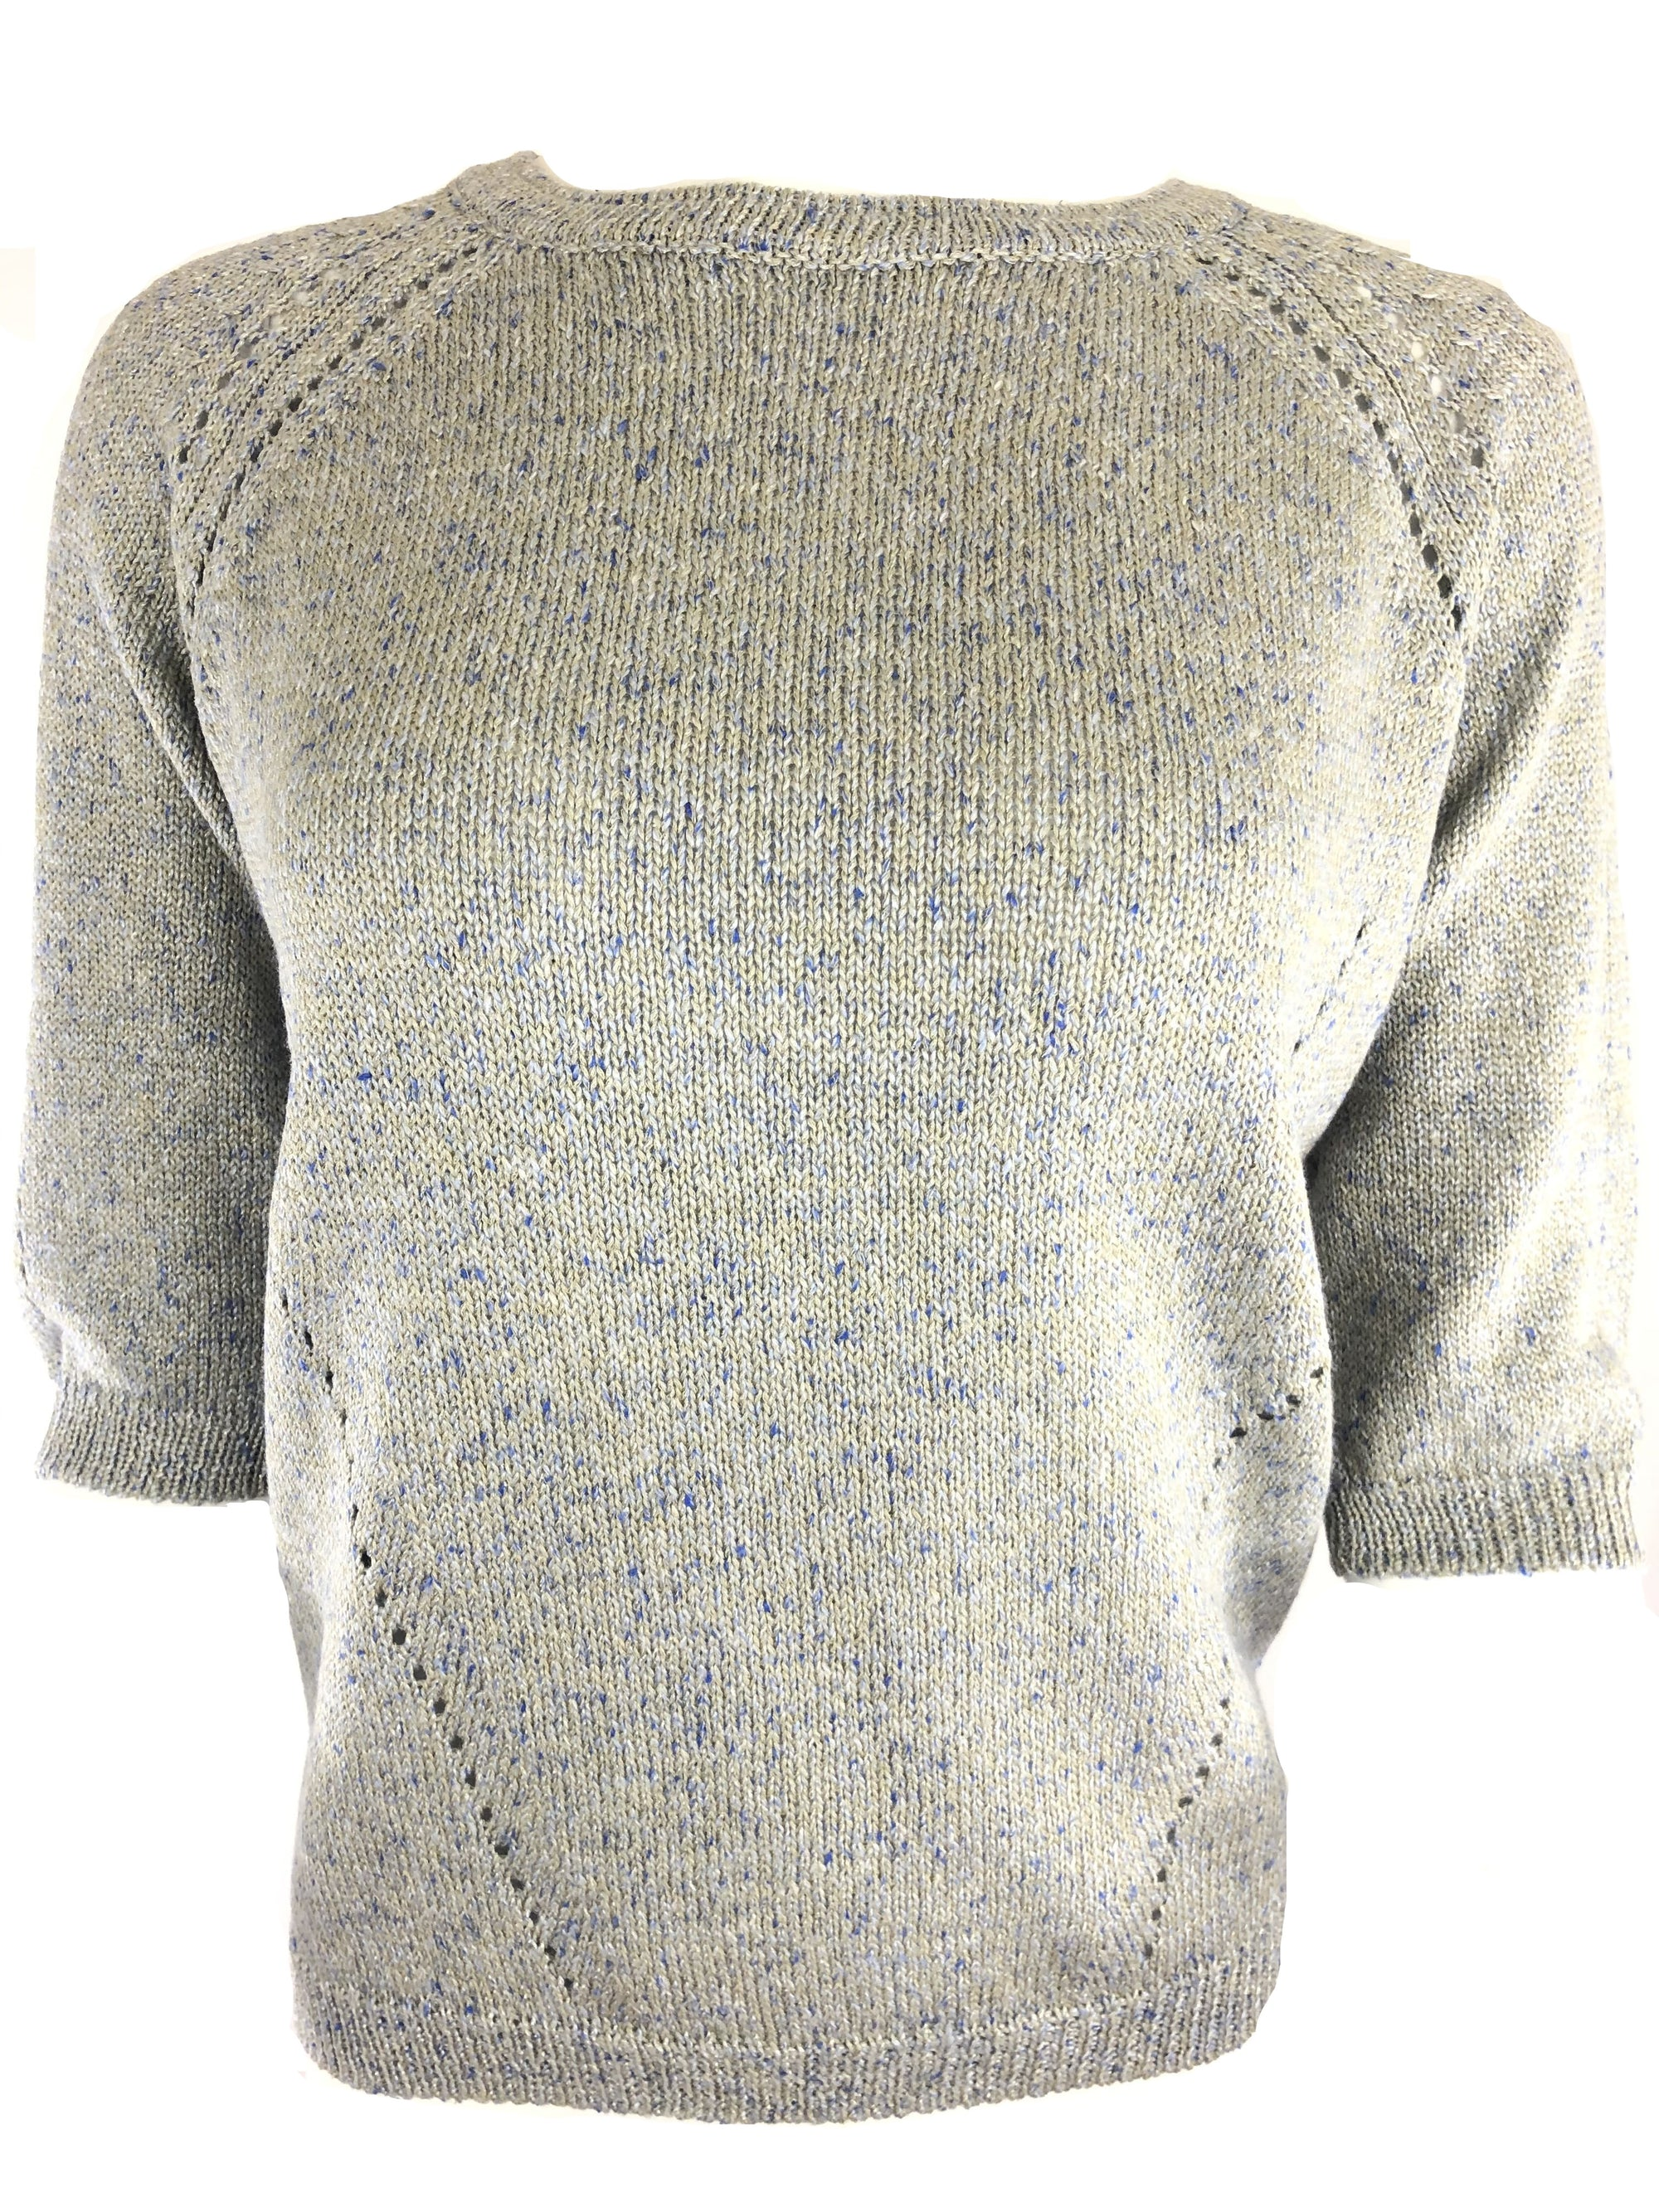 TONET CREW NECK CABLE RIB SWEATER